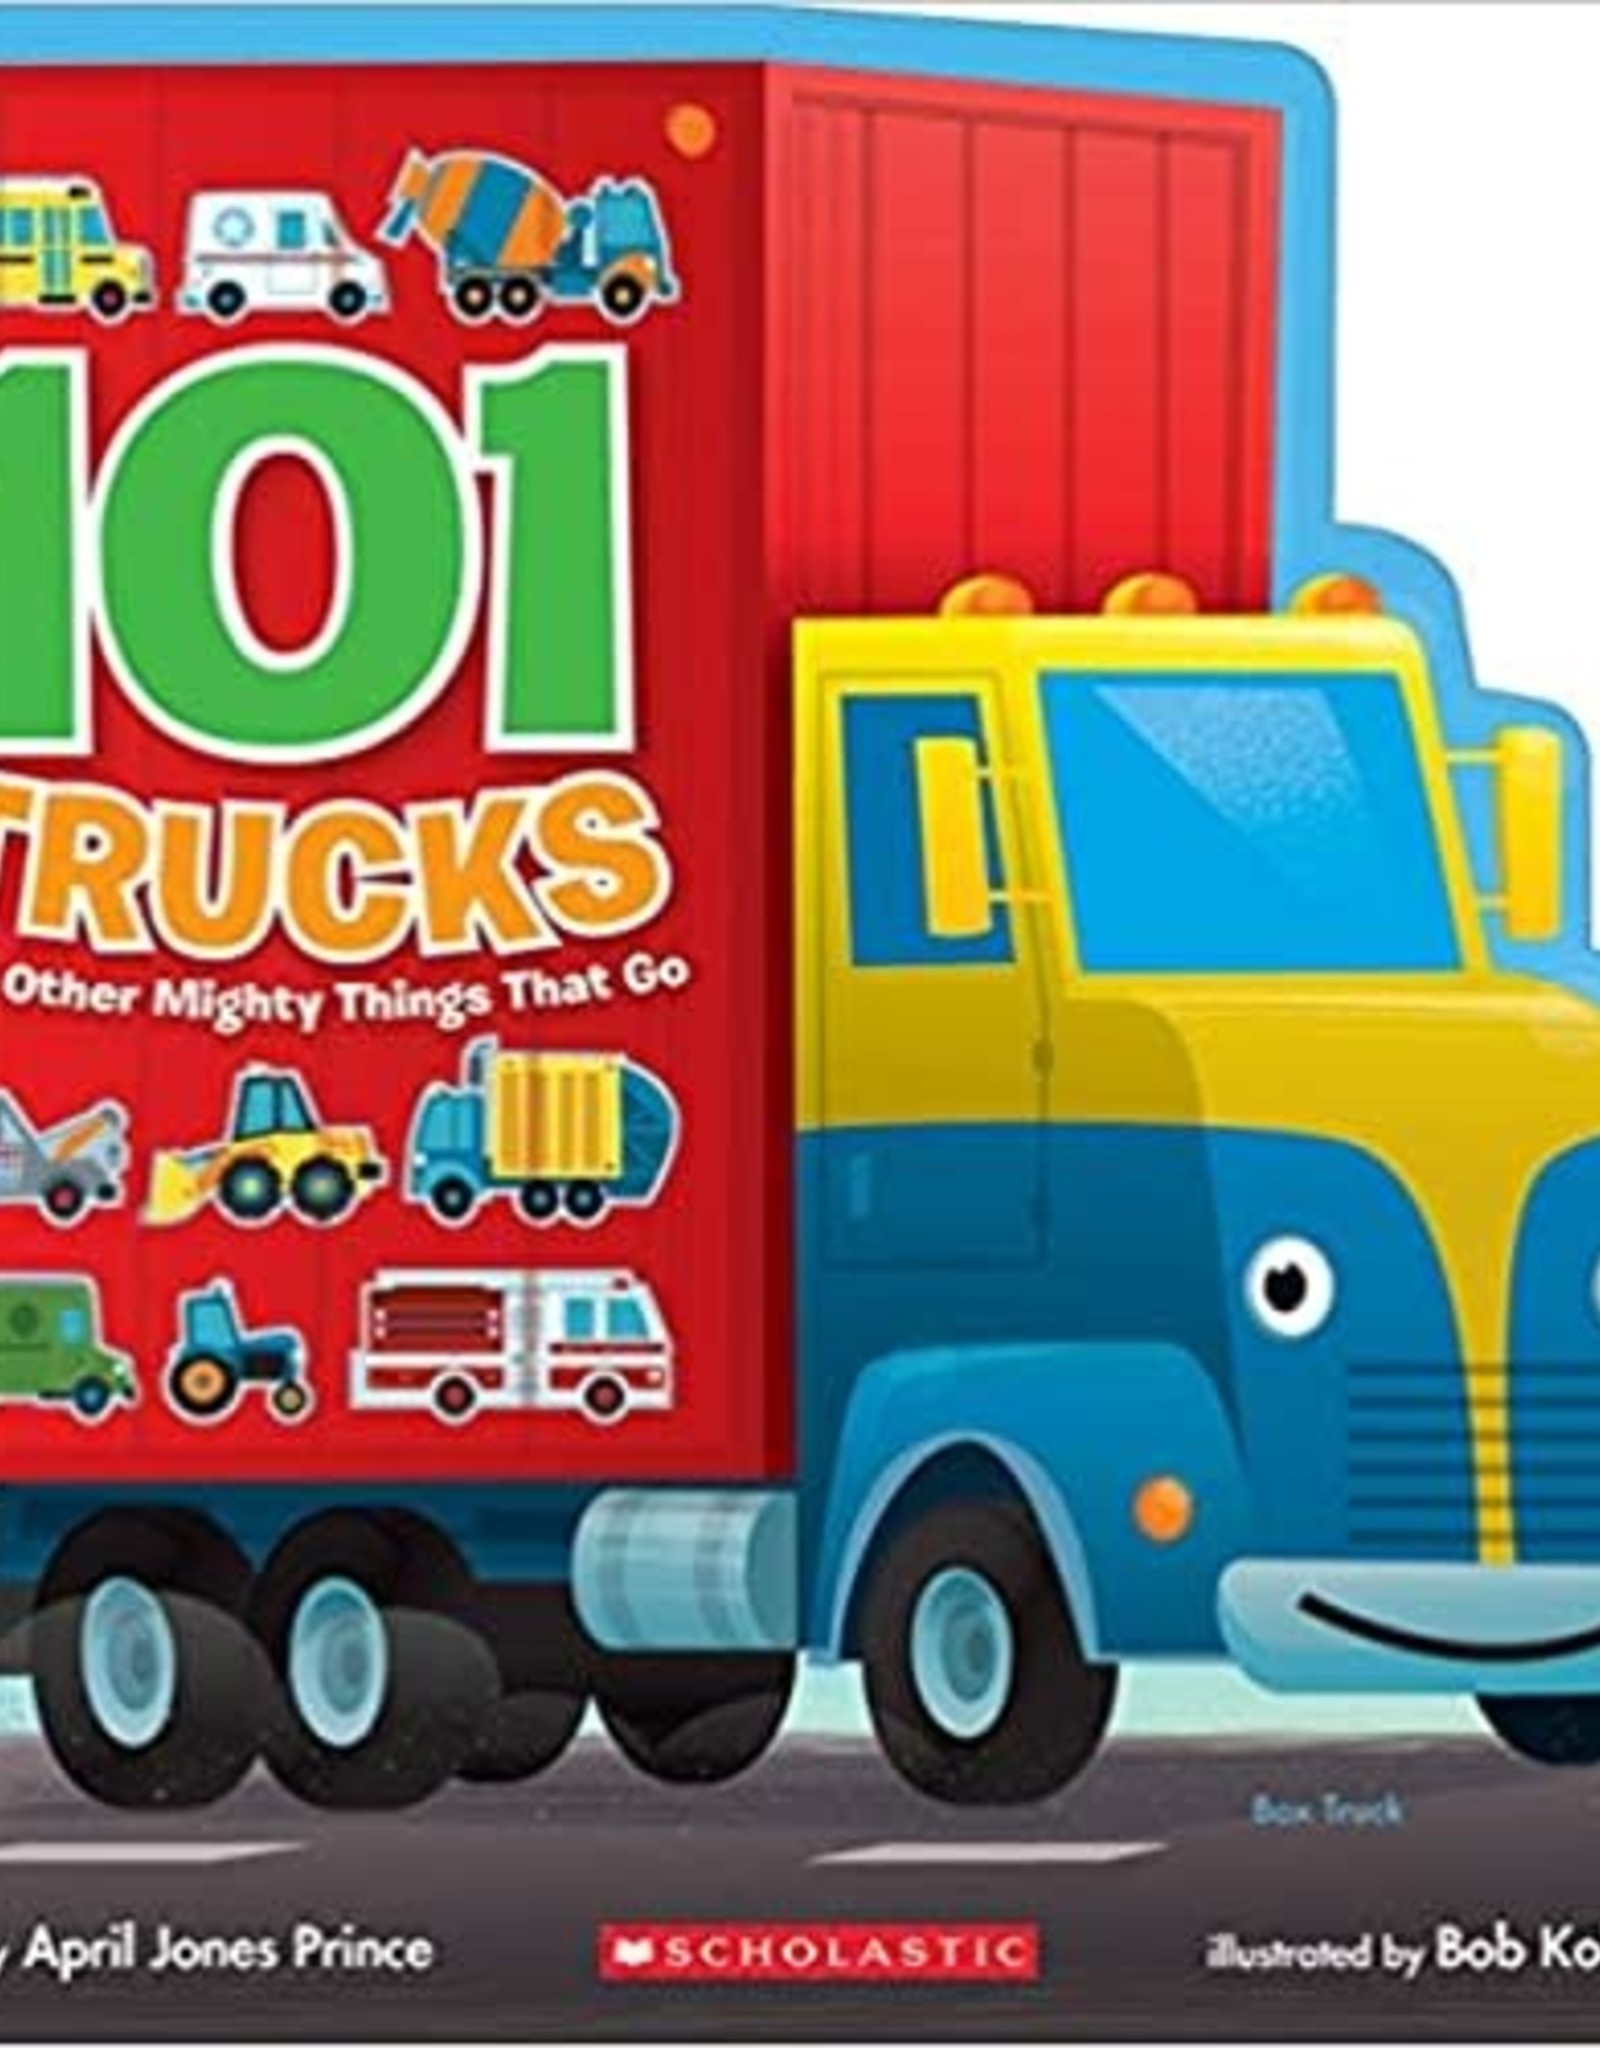 Scholastic 101 Trucks And Other Mighty Things That Go